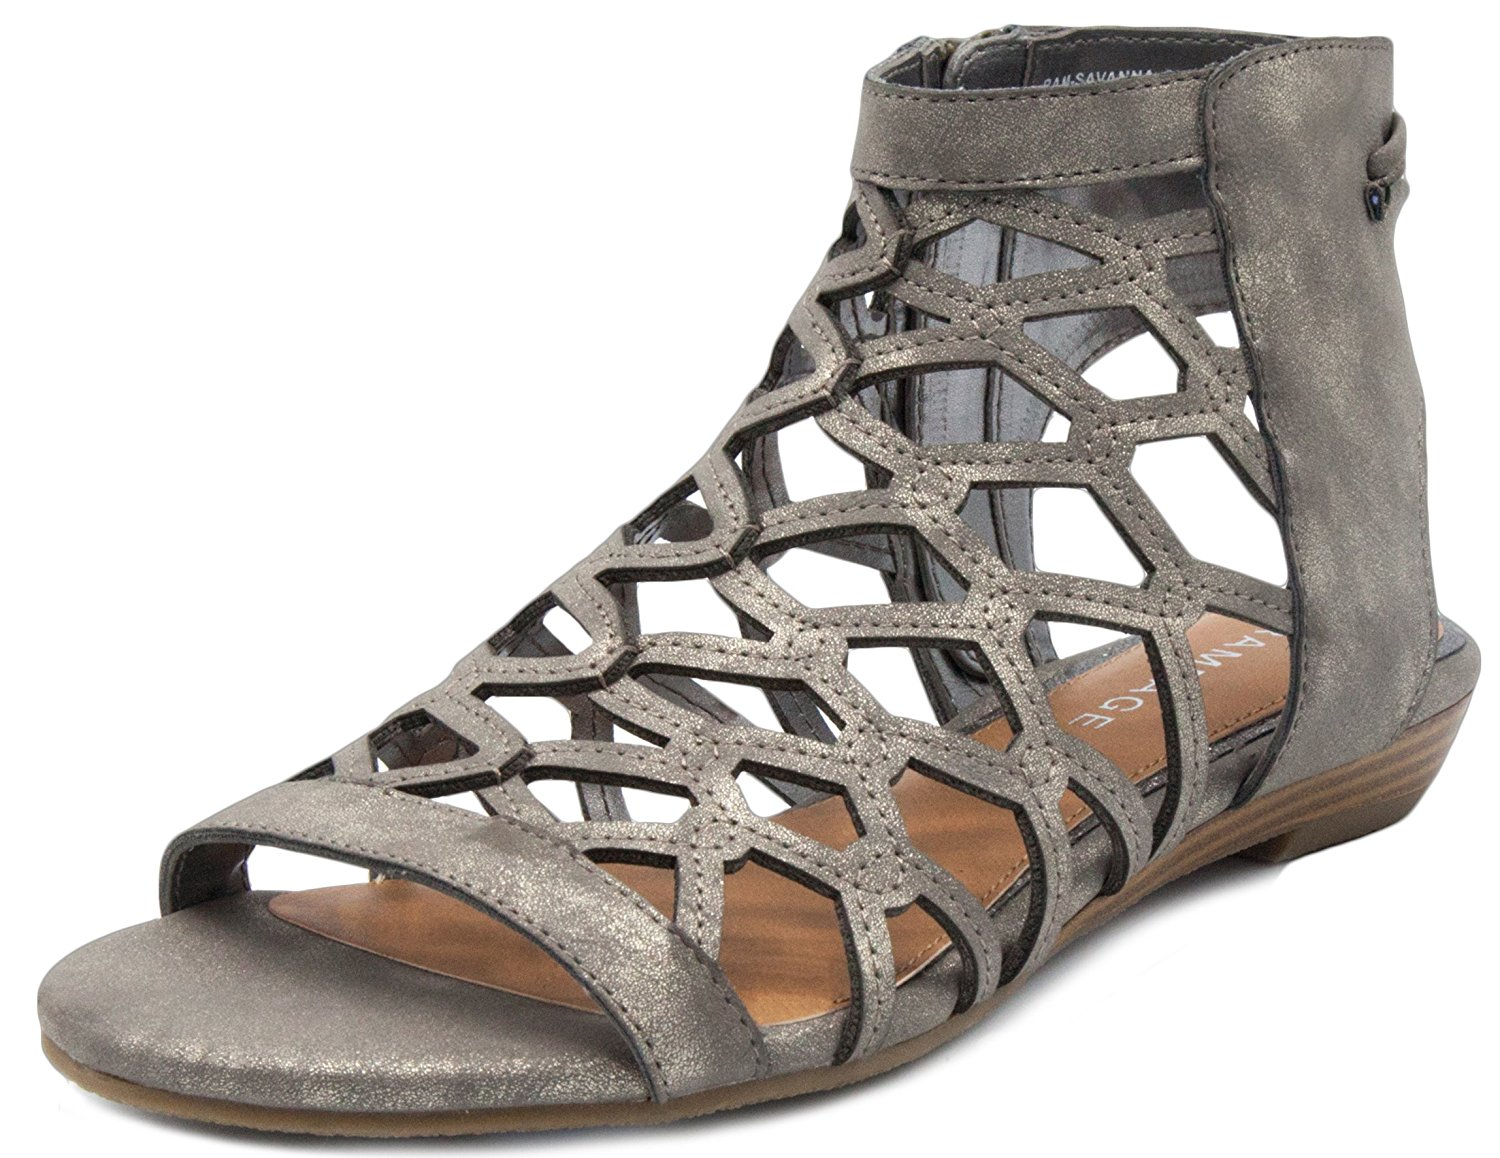 d3908cf9f23 Get Quotations · Rampage Women s Savanna Demi Wedge with Honeycomb Cutouts  and Zip Up Ankle High Gladiator Sandal